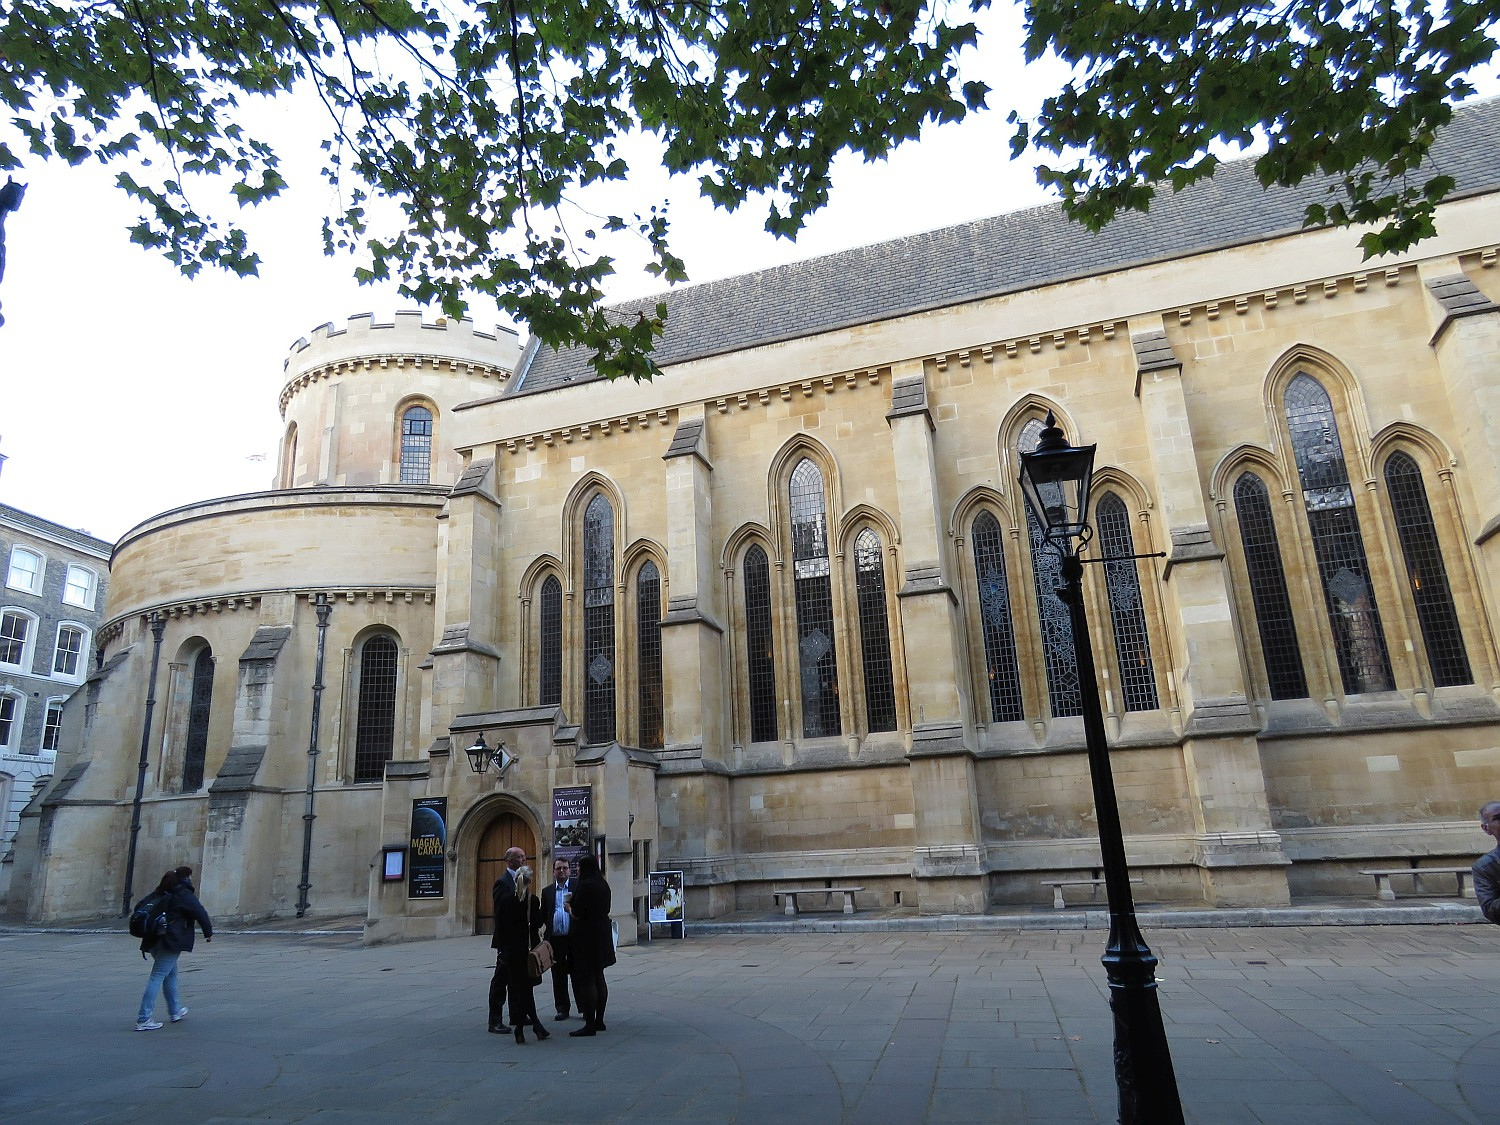 Temple Church of the Inner and Middle Temple dates to the 12th century and the Knights Templar.  This was originally their UK HQ, until they were dissolved in the mid-14th century.